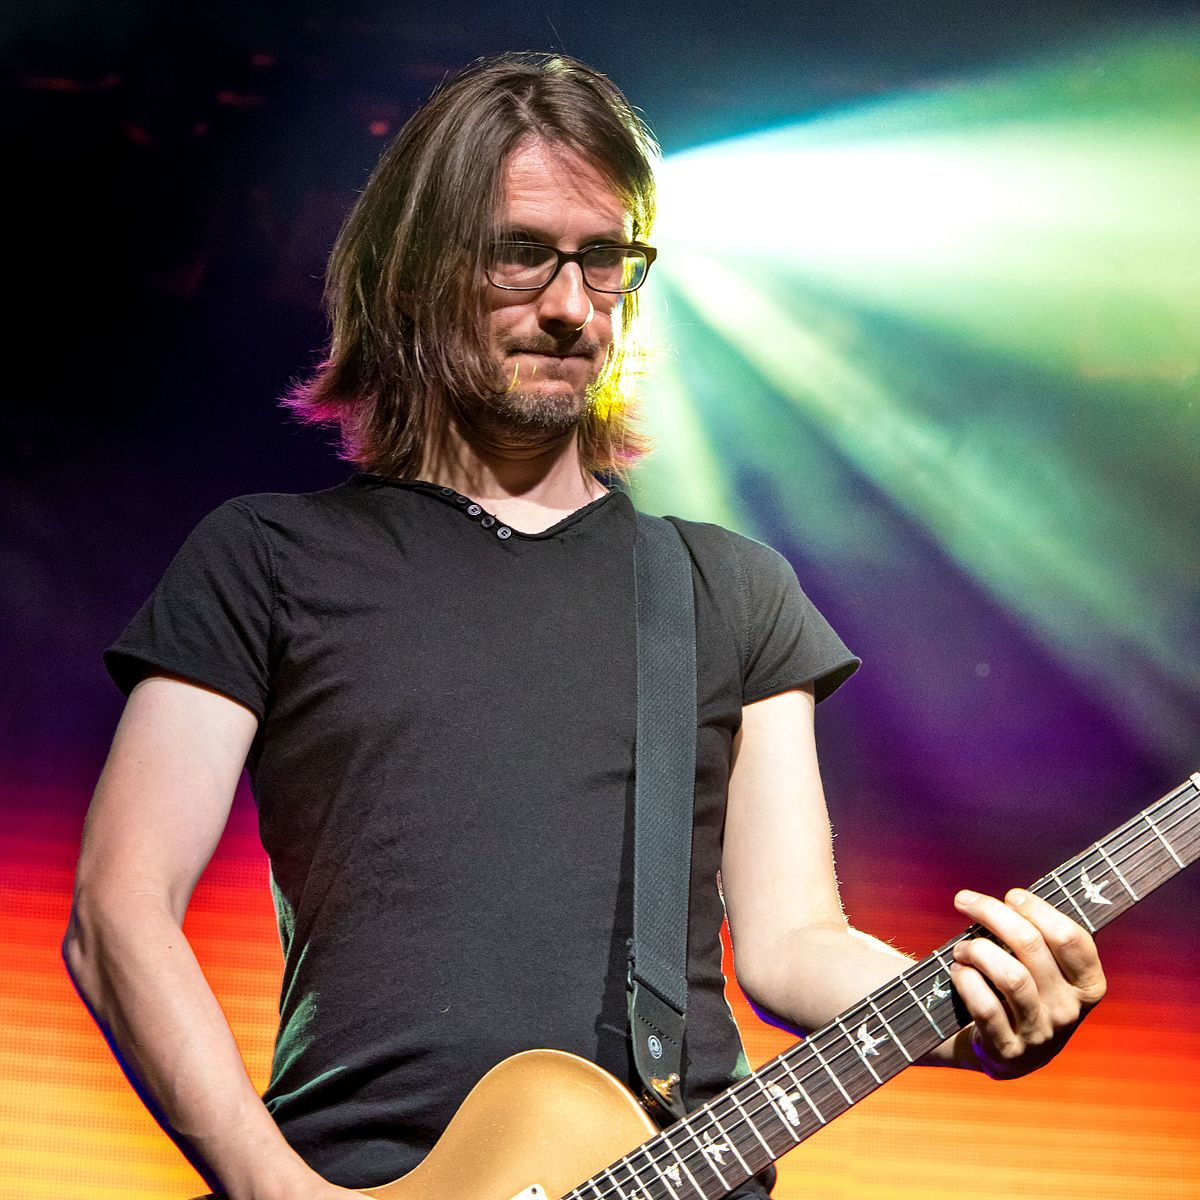 Steven Wilson Wikipedia The Guitar Wiring Blog Diagrams And Tips January 2011